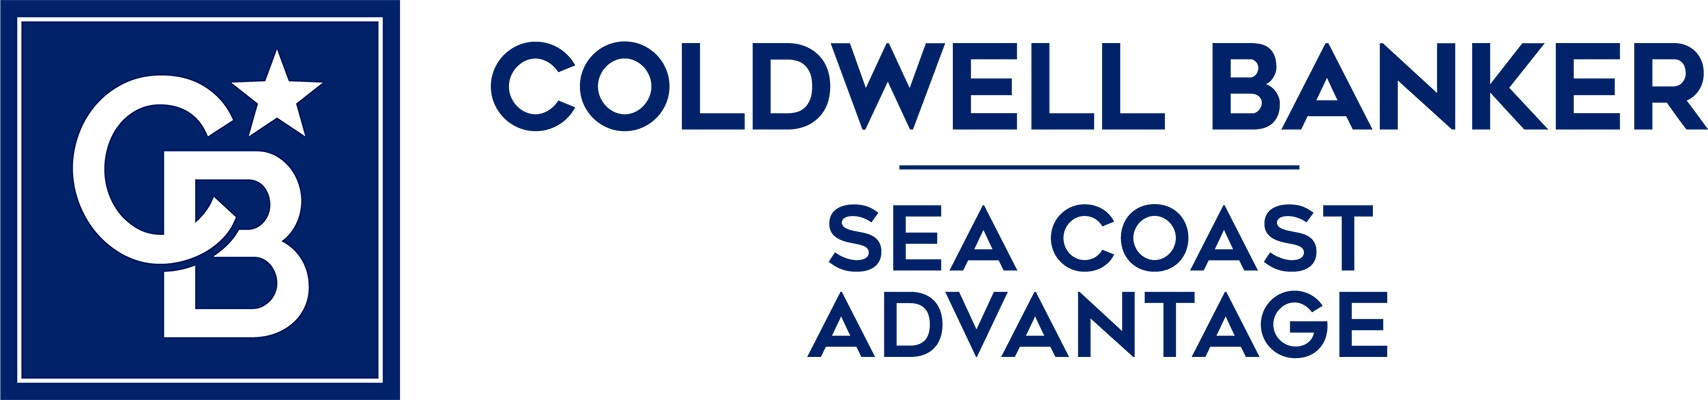 Paul Allsup - Coldwell Banker Sea Coast Advantage Realty